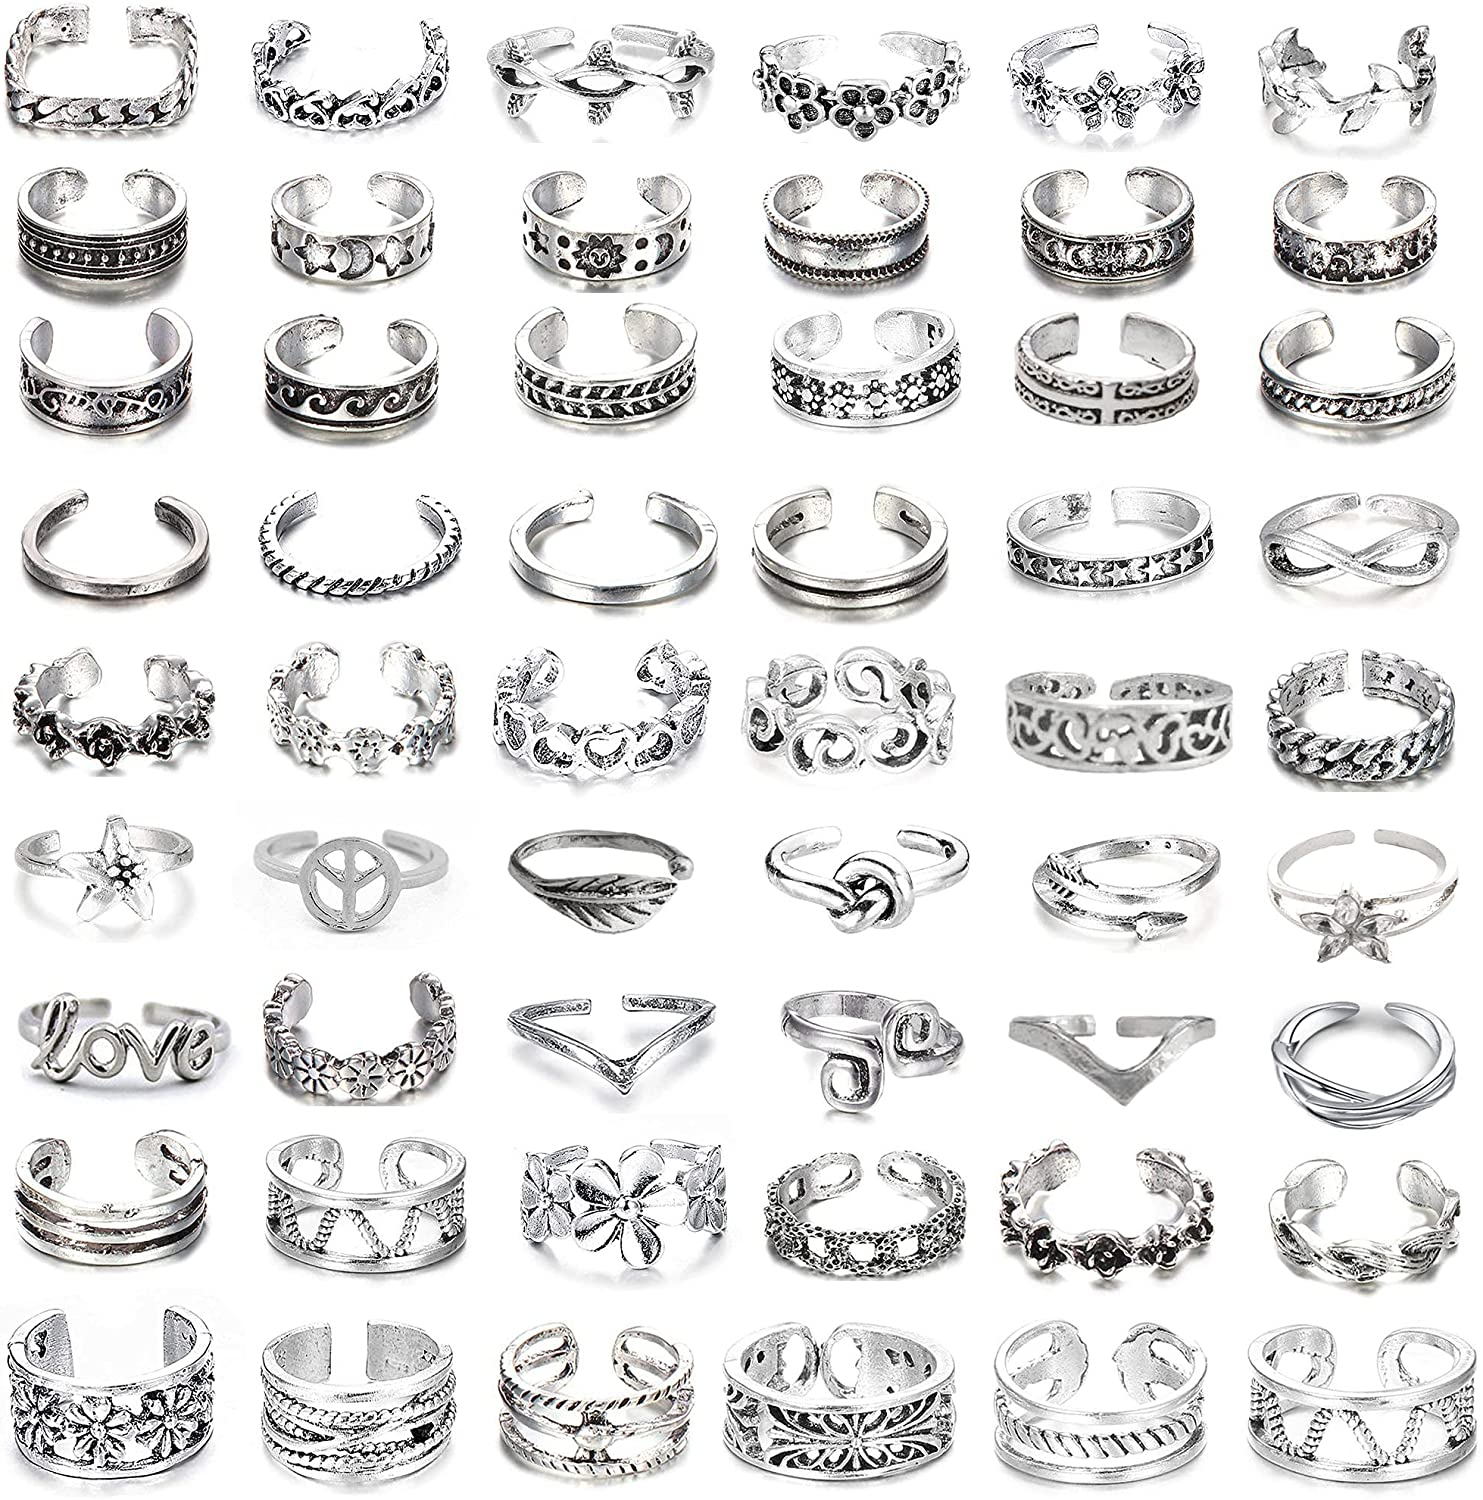 54Pcs Open Toe Rings Set for Women Men Adjustable Vintage Retro Knuckle Ring Toe Finger Tail Ring Beach Foot Jewelry